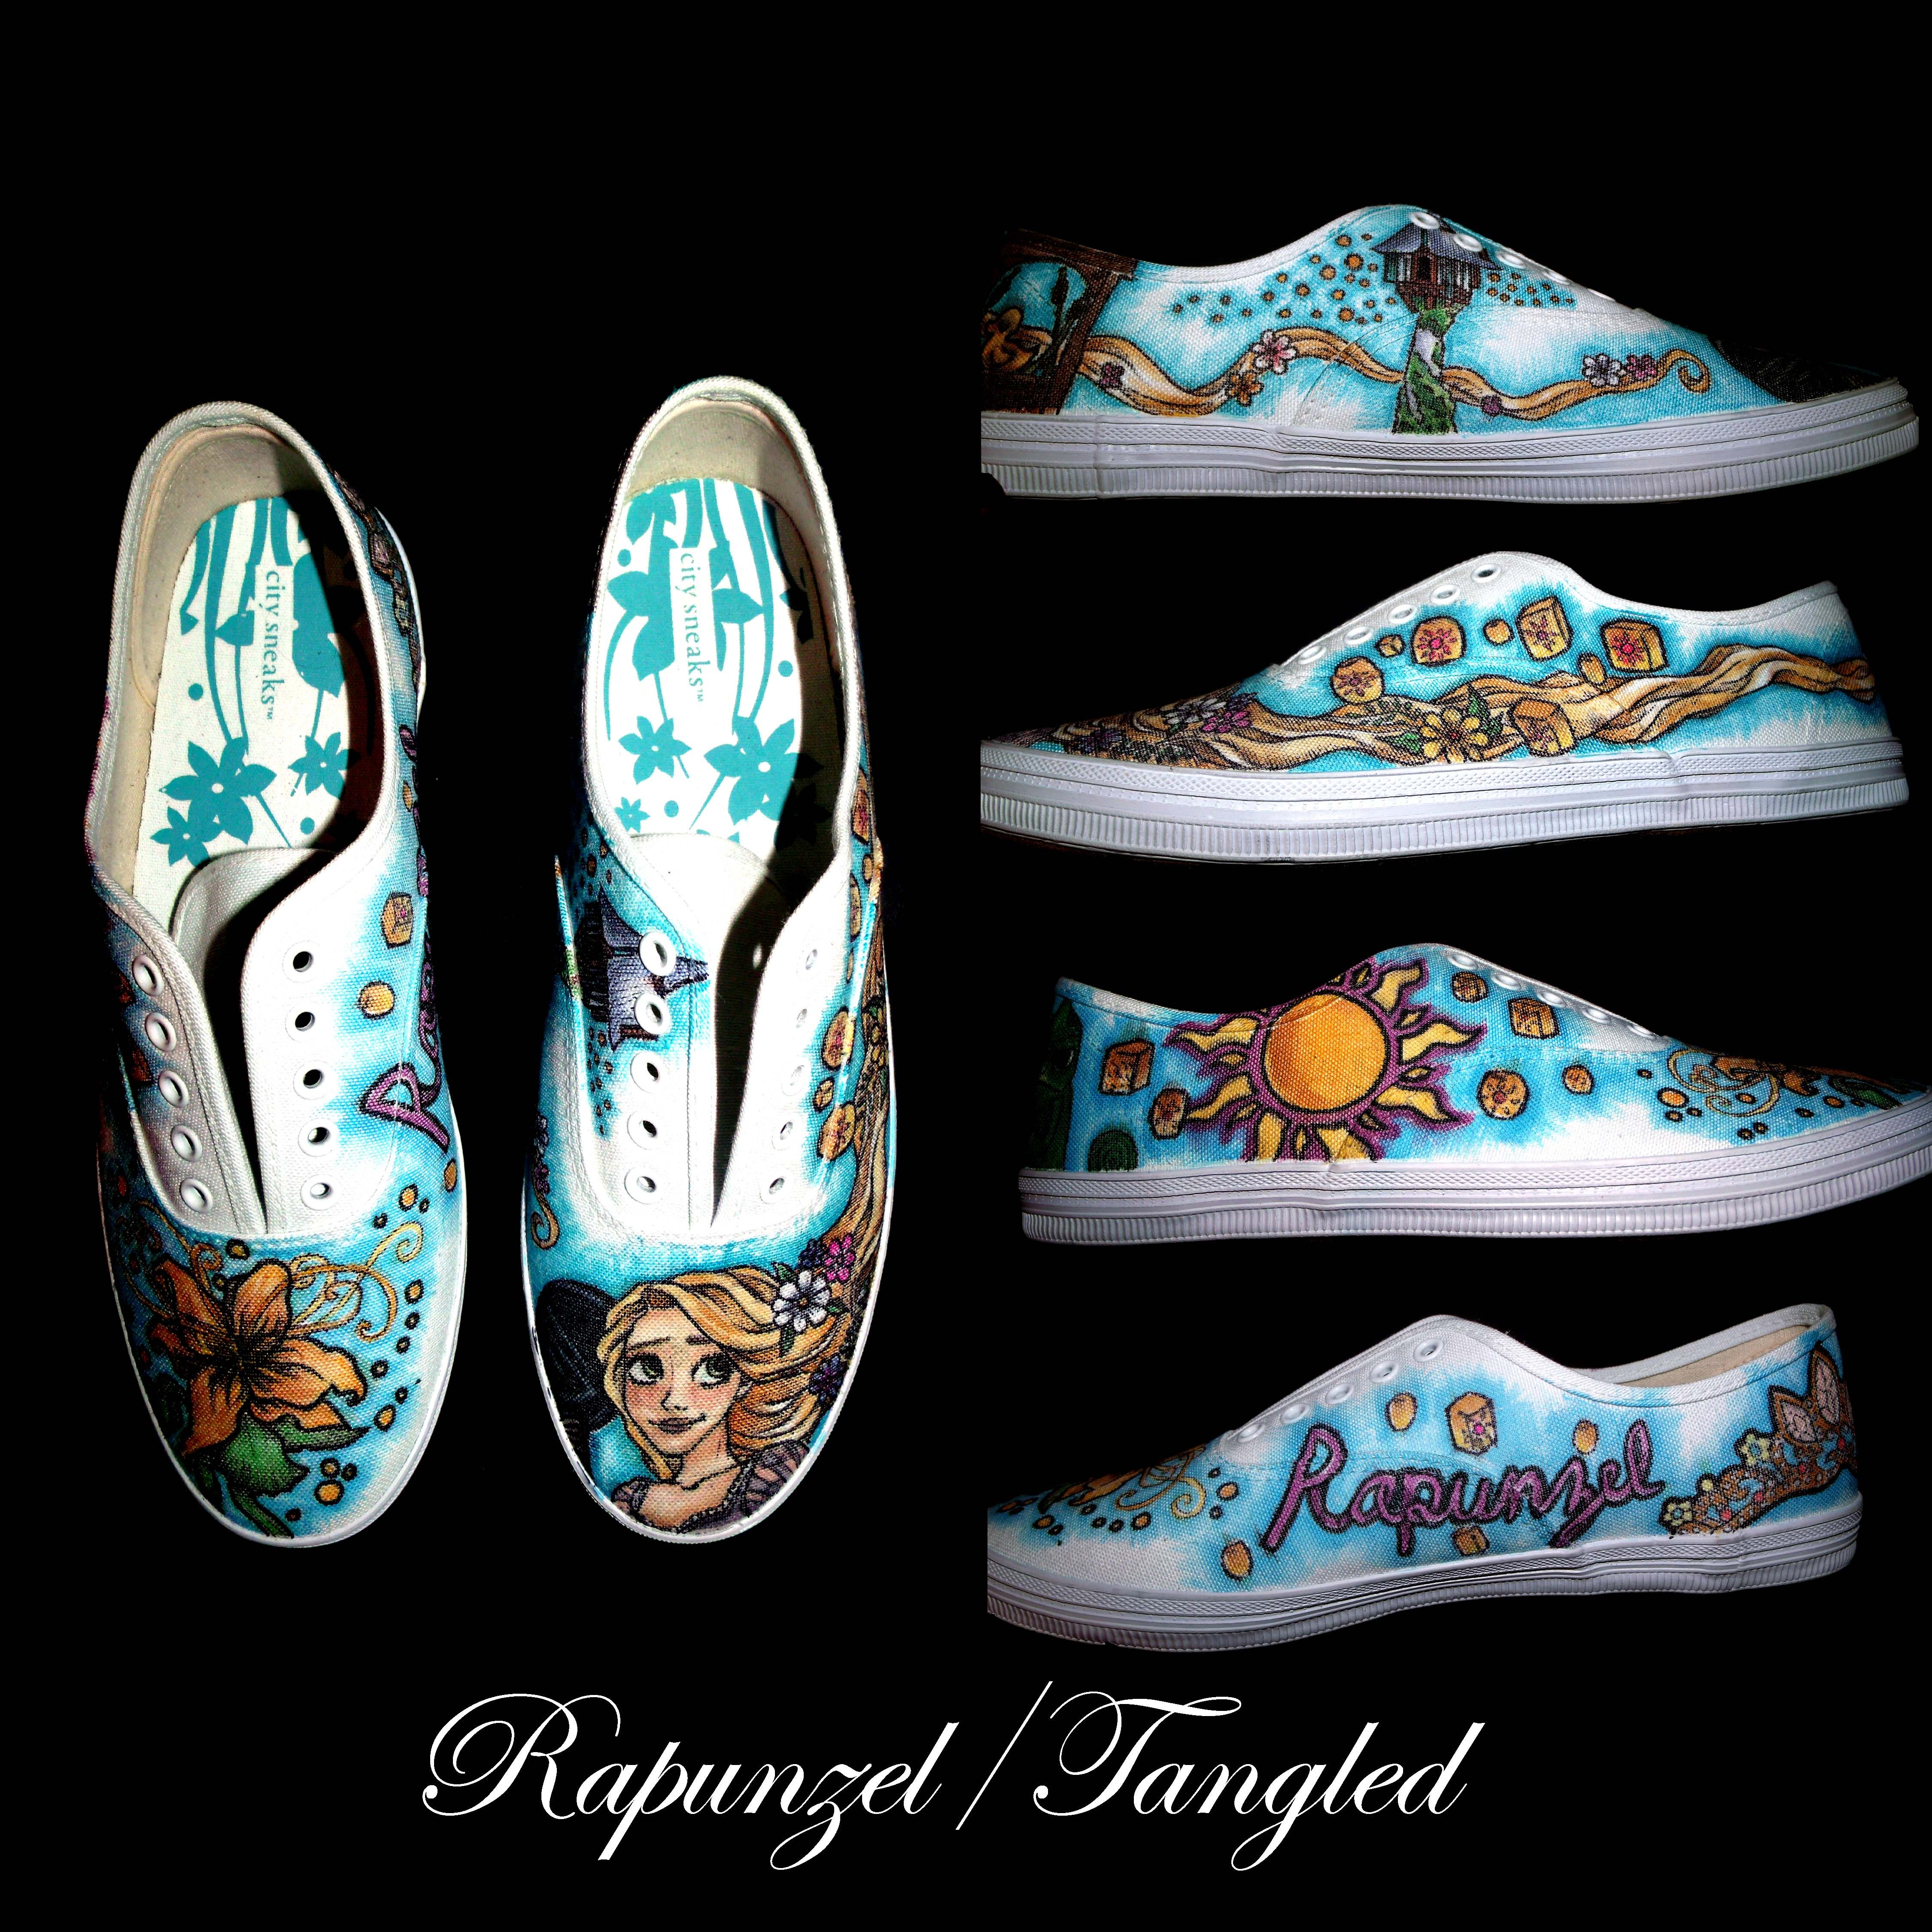 Tangled/ Rapunzel Shoes. Copic and sharpies!! One of my favorite pairs that I've done so far!